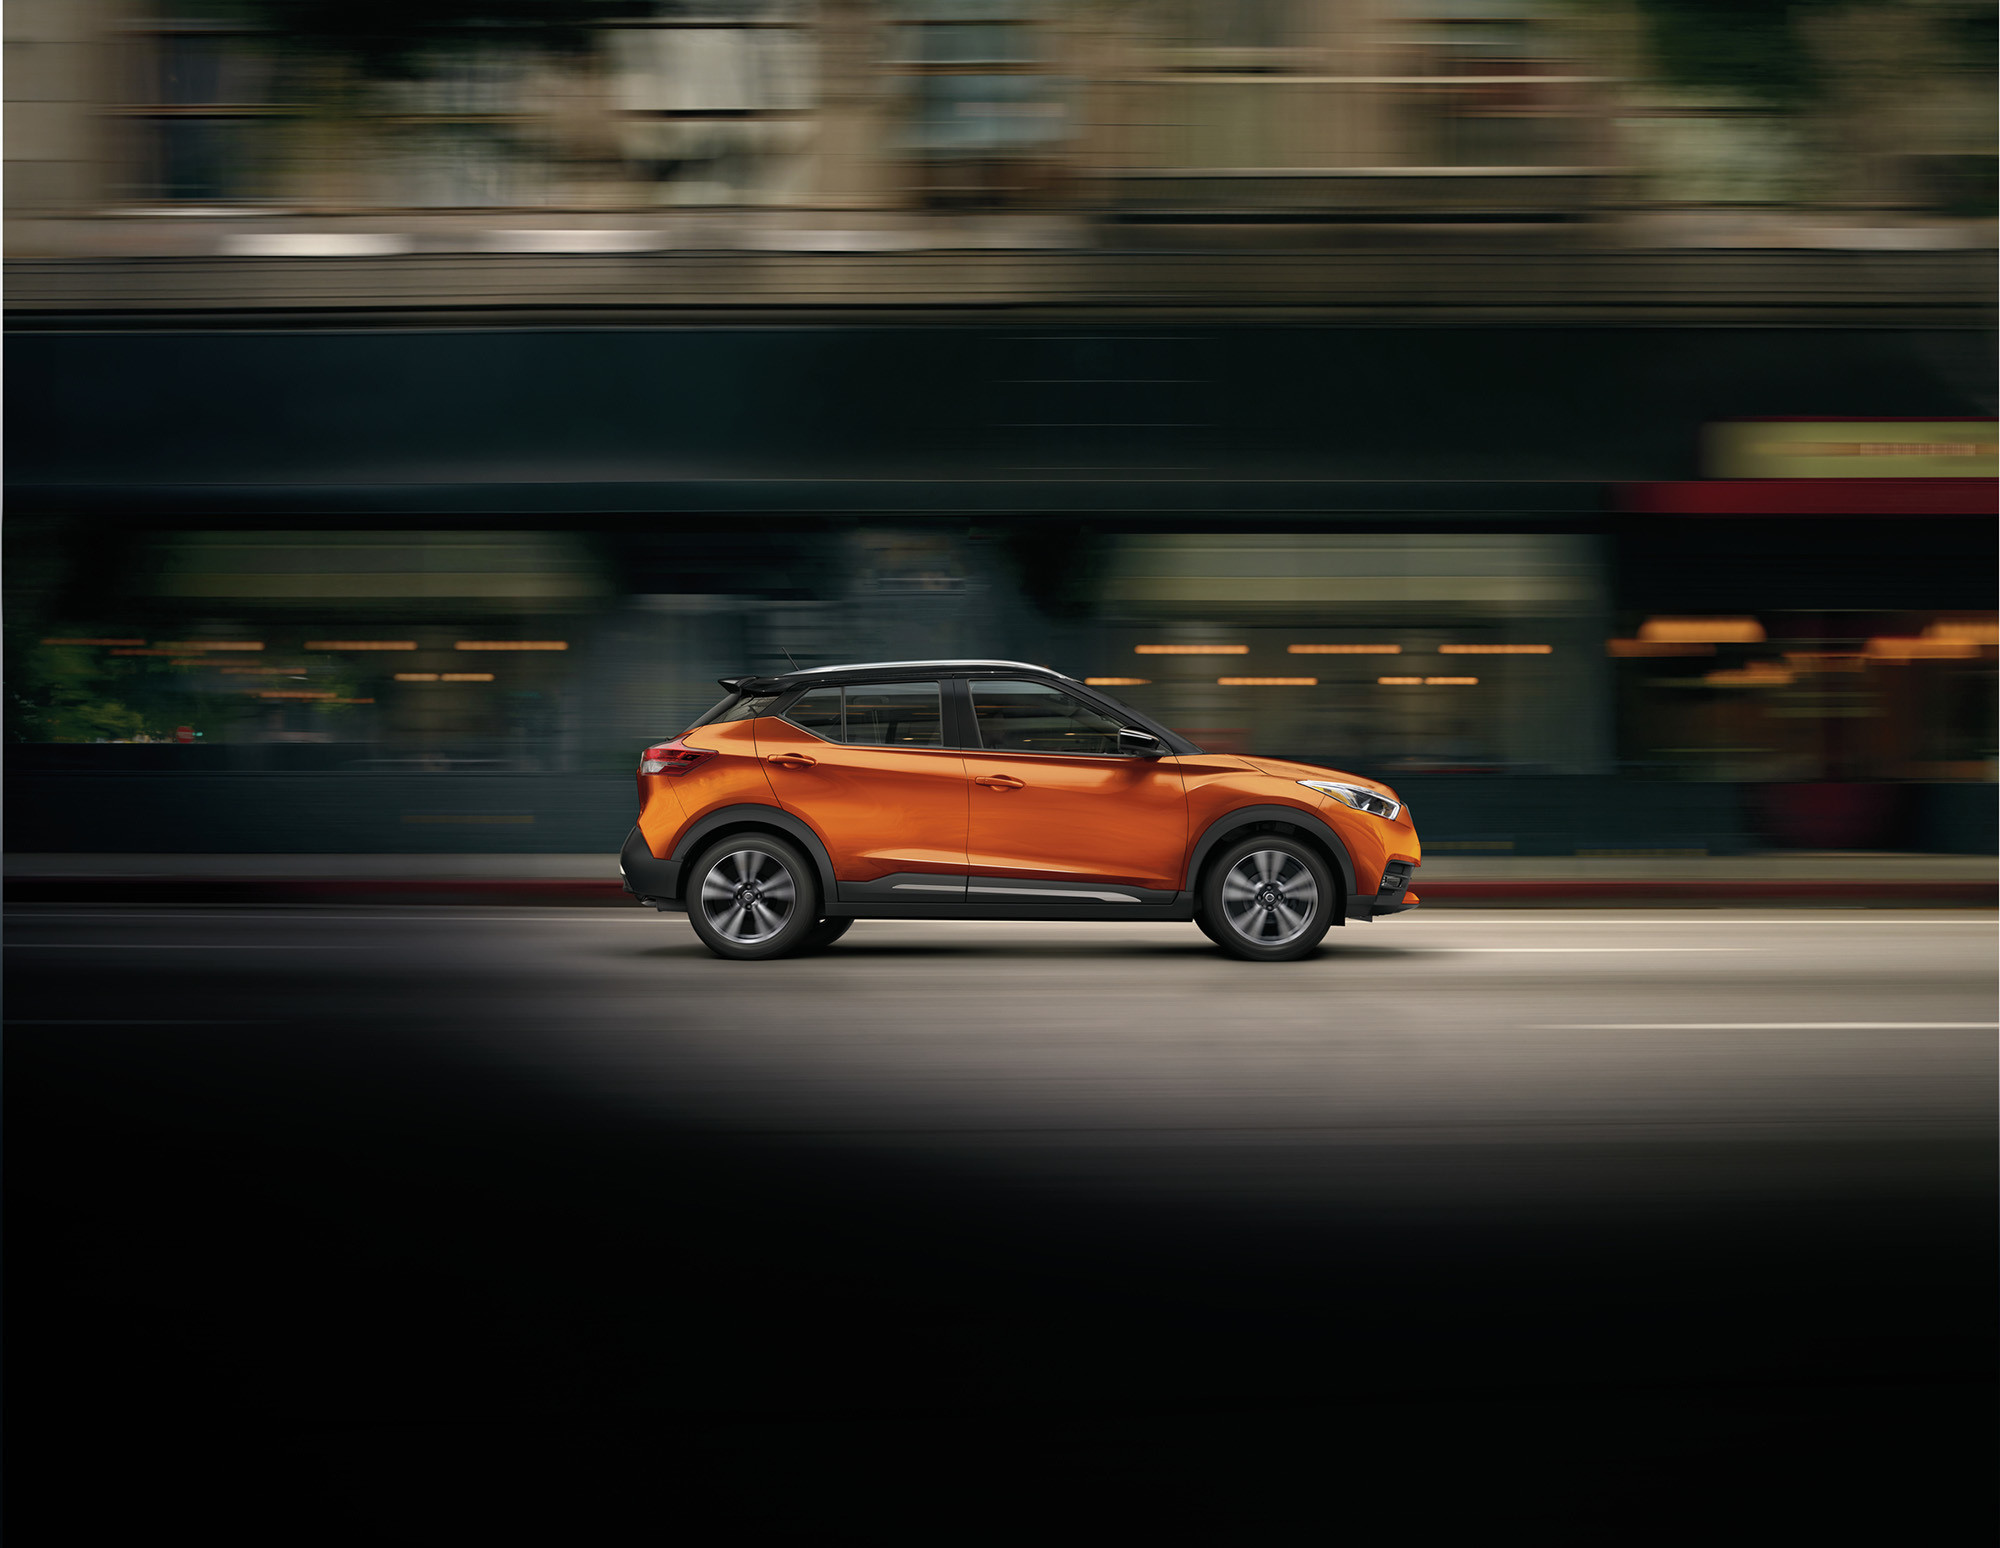 Value Kia Philadelphia >> Auto review: The 2019 Nissan Kicks adds another new choice in the small crossover market ...